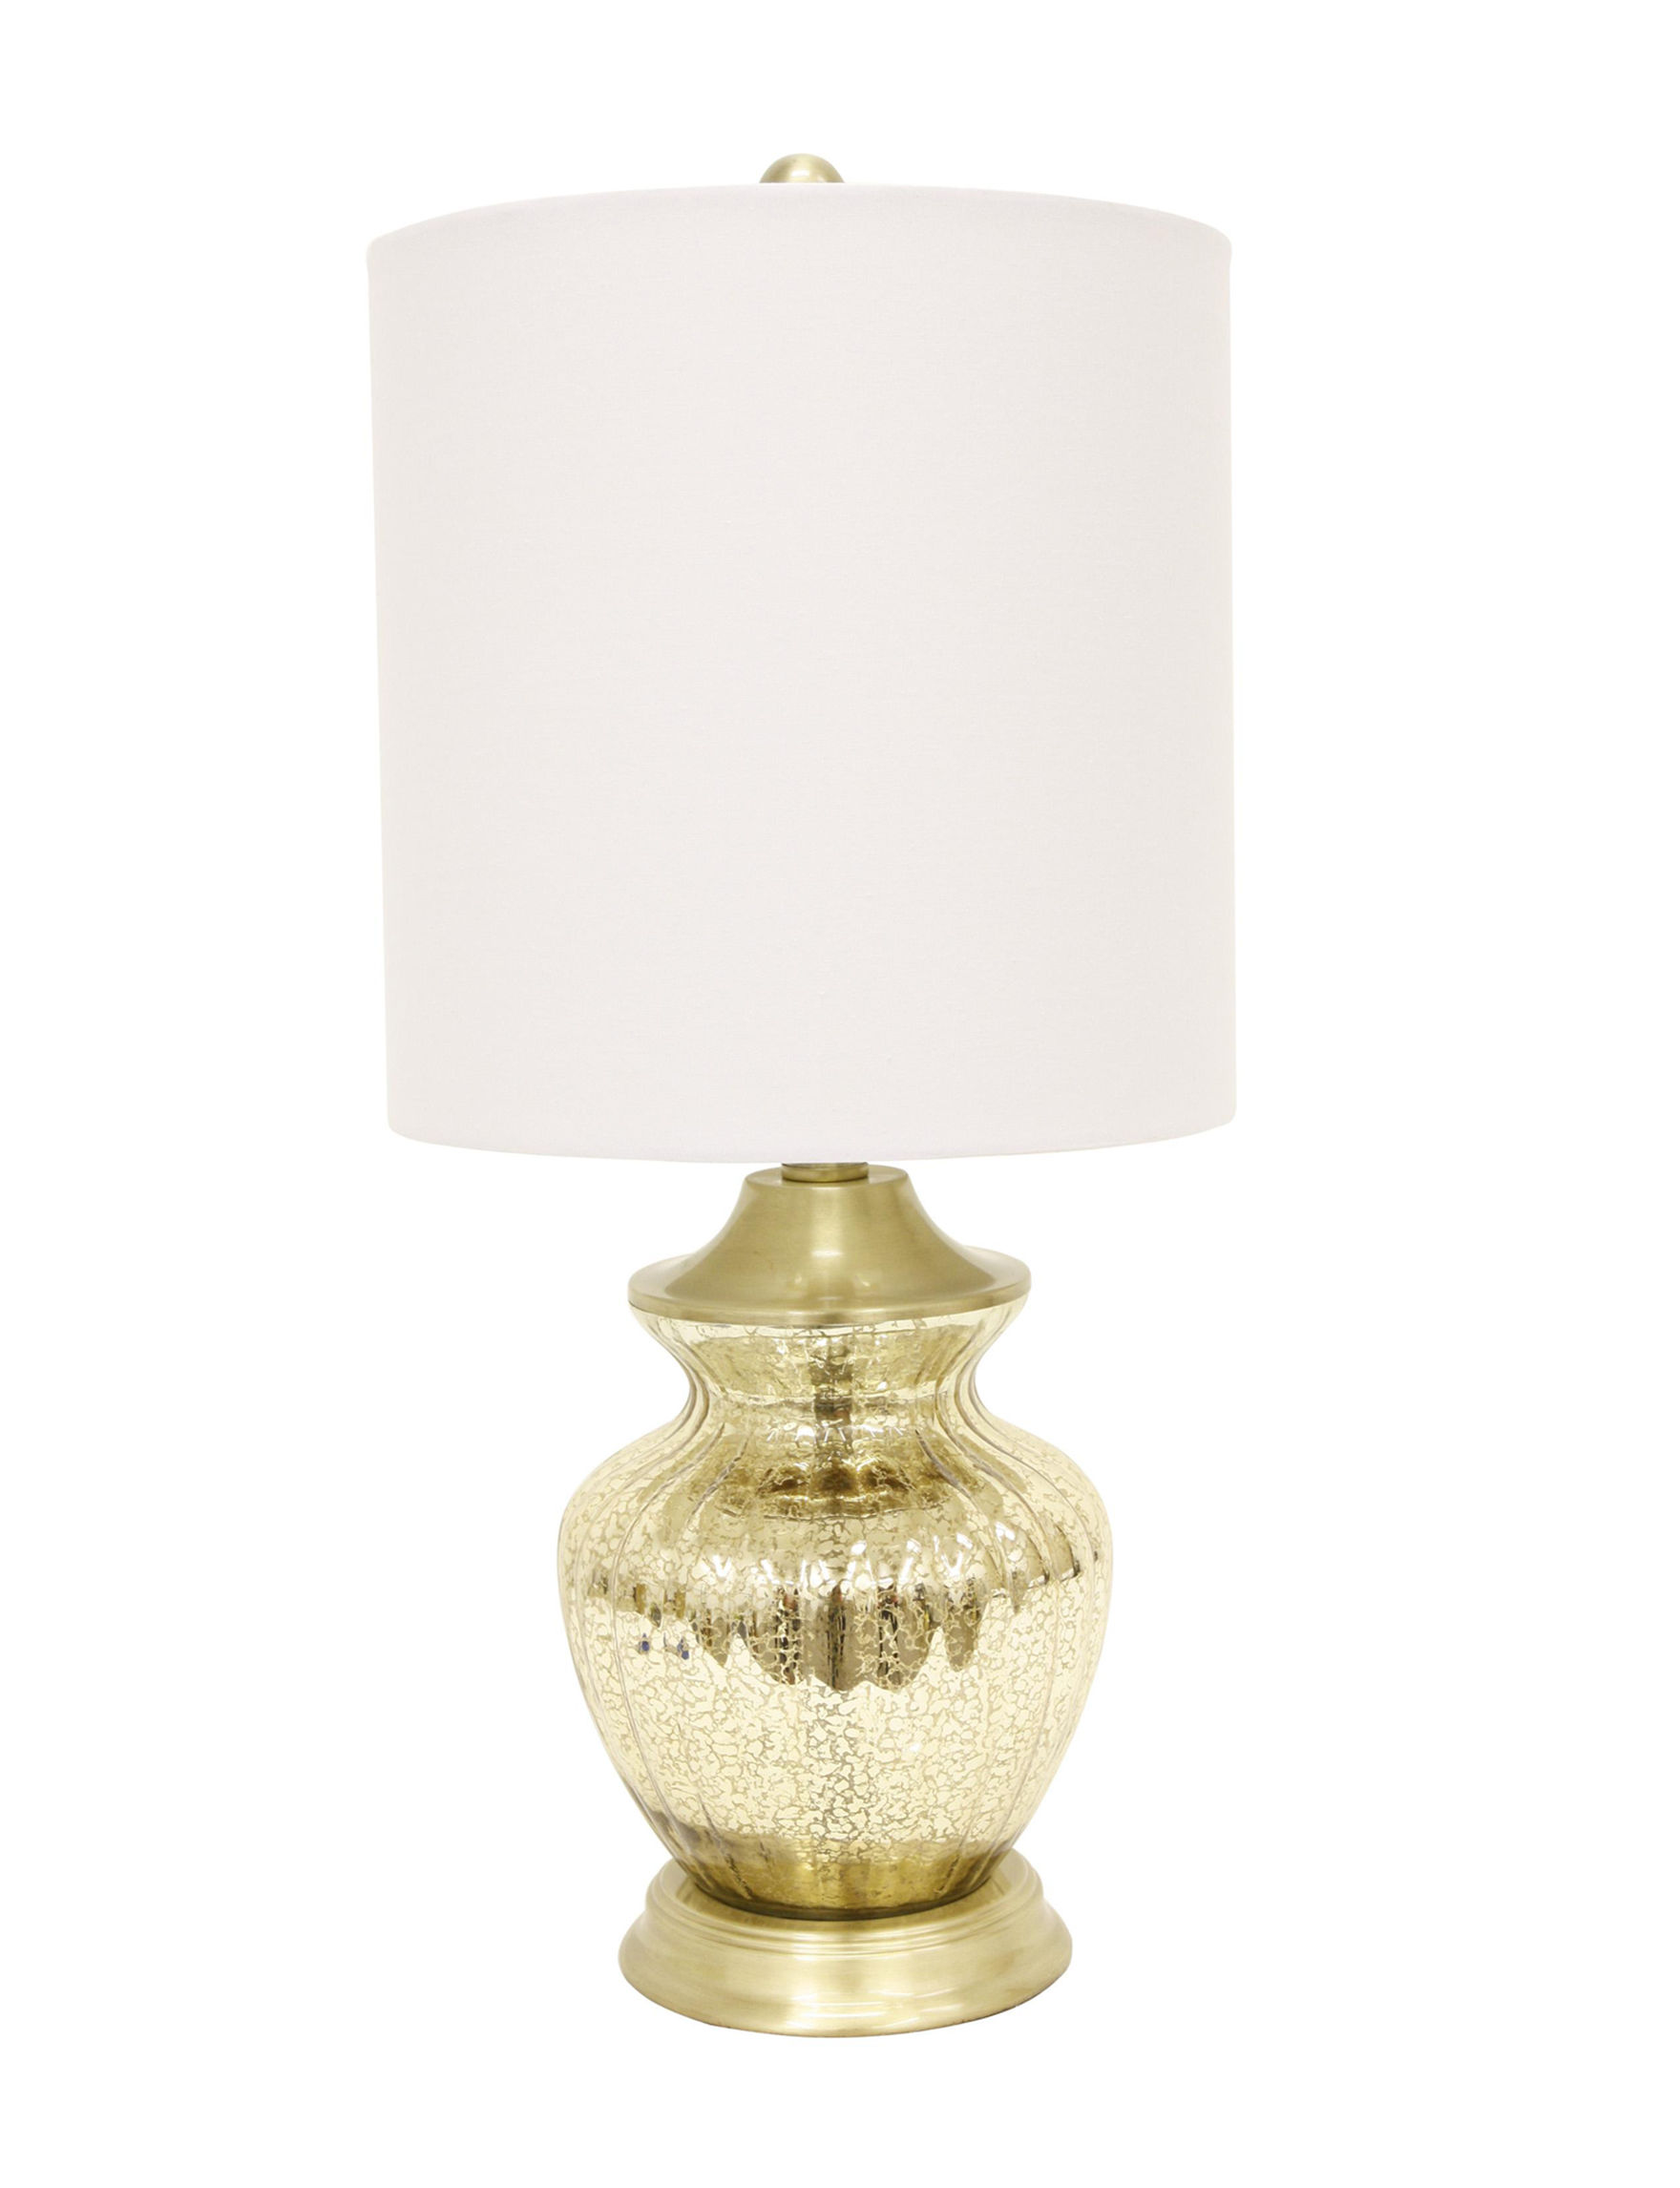 Decor Therapy Gold Table Lamps Lighting & Lamps